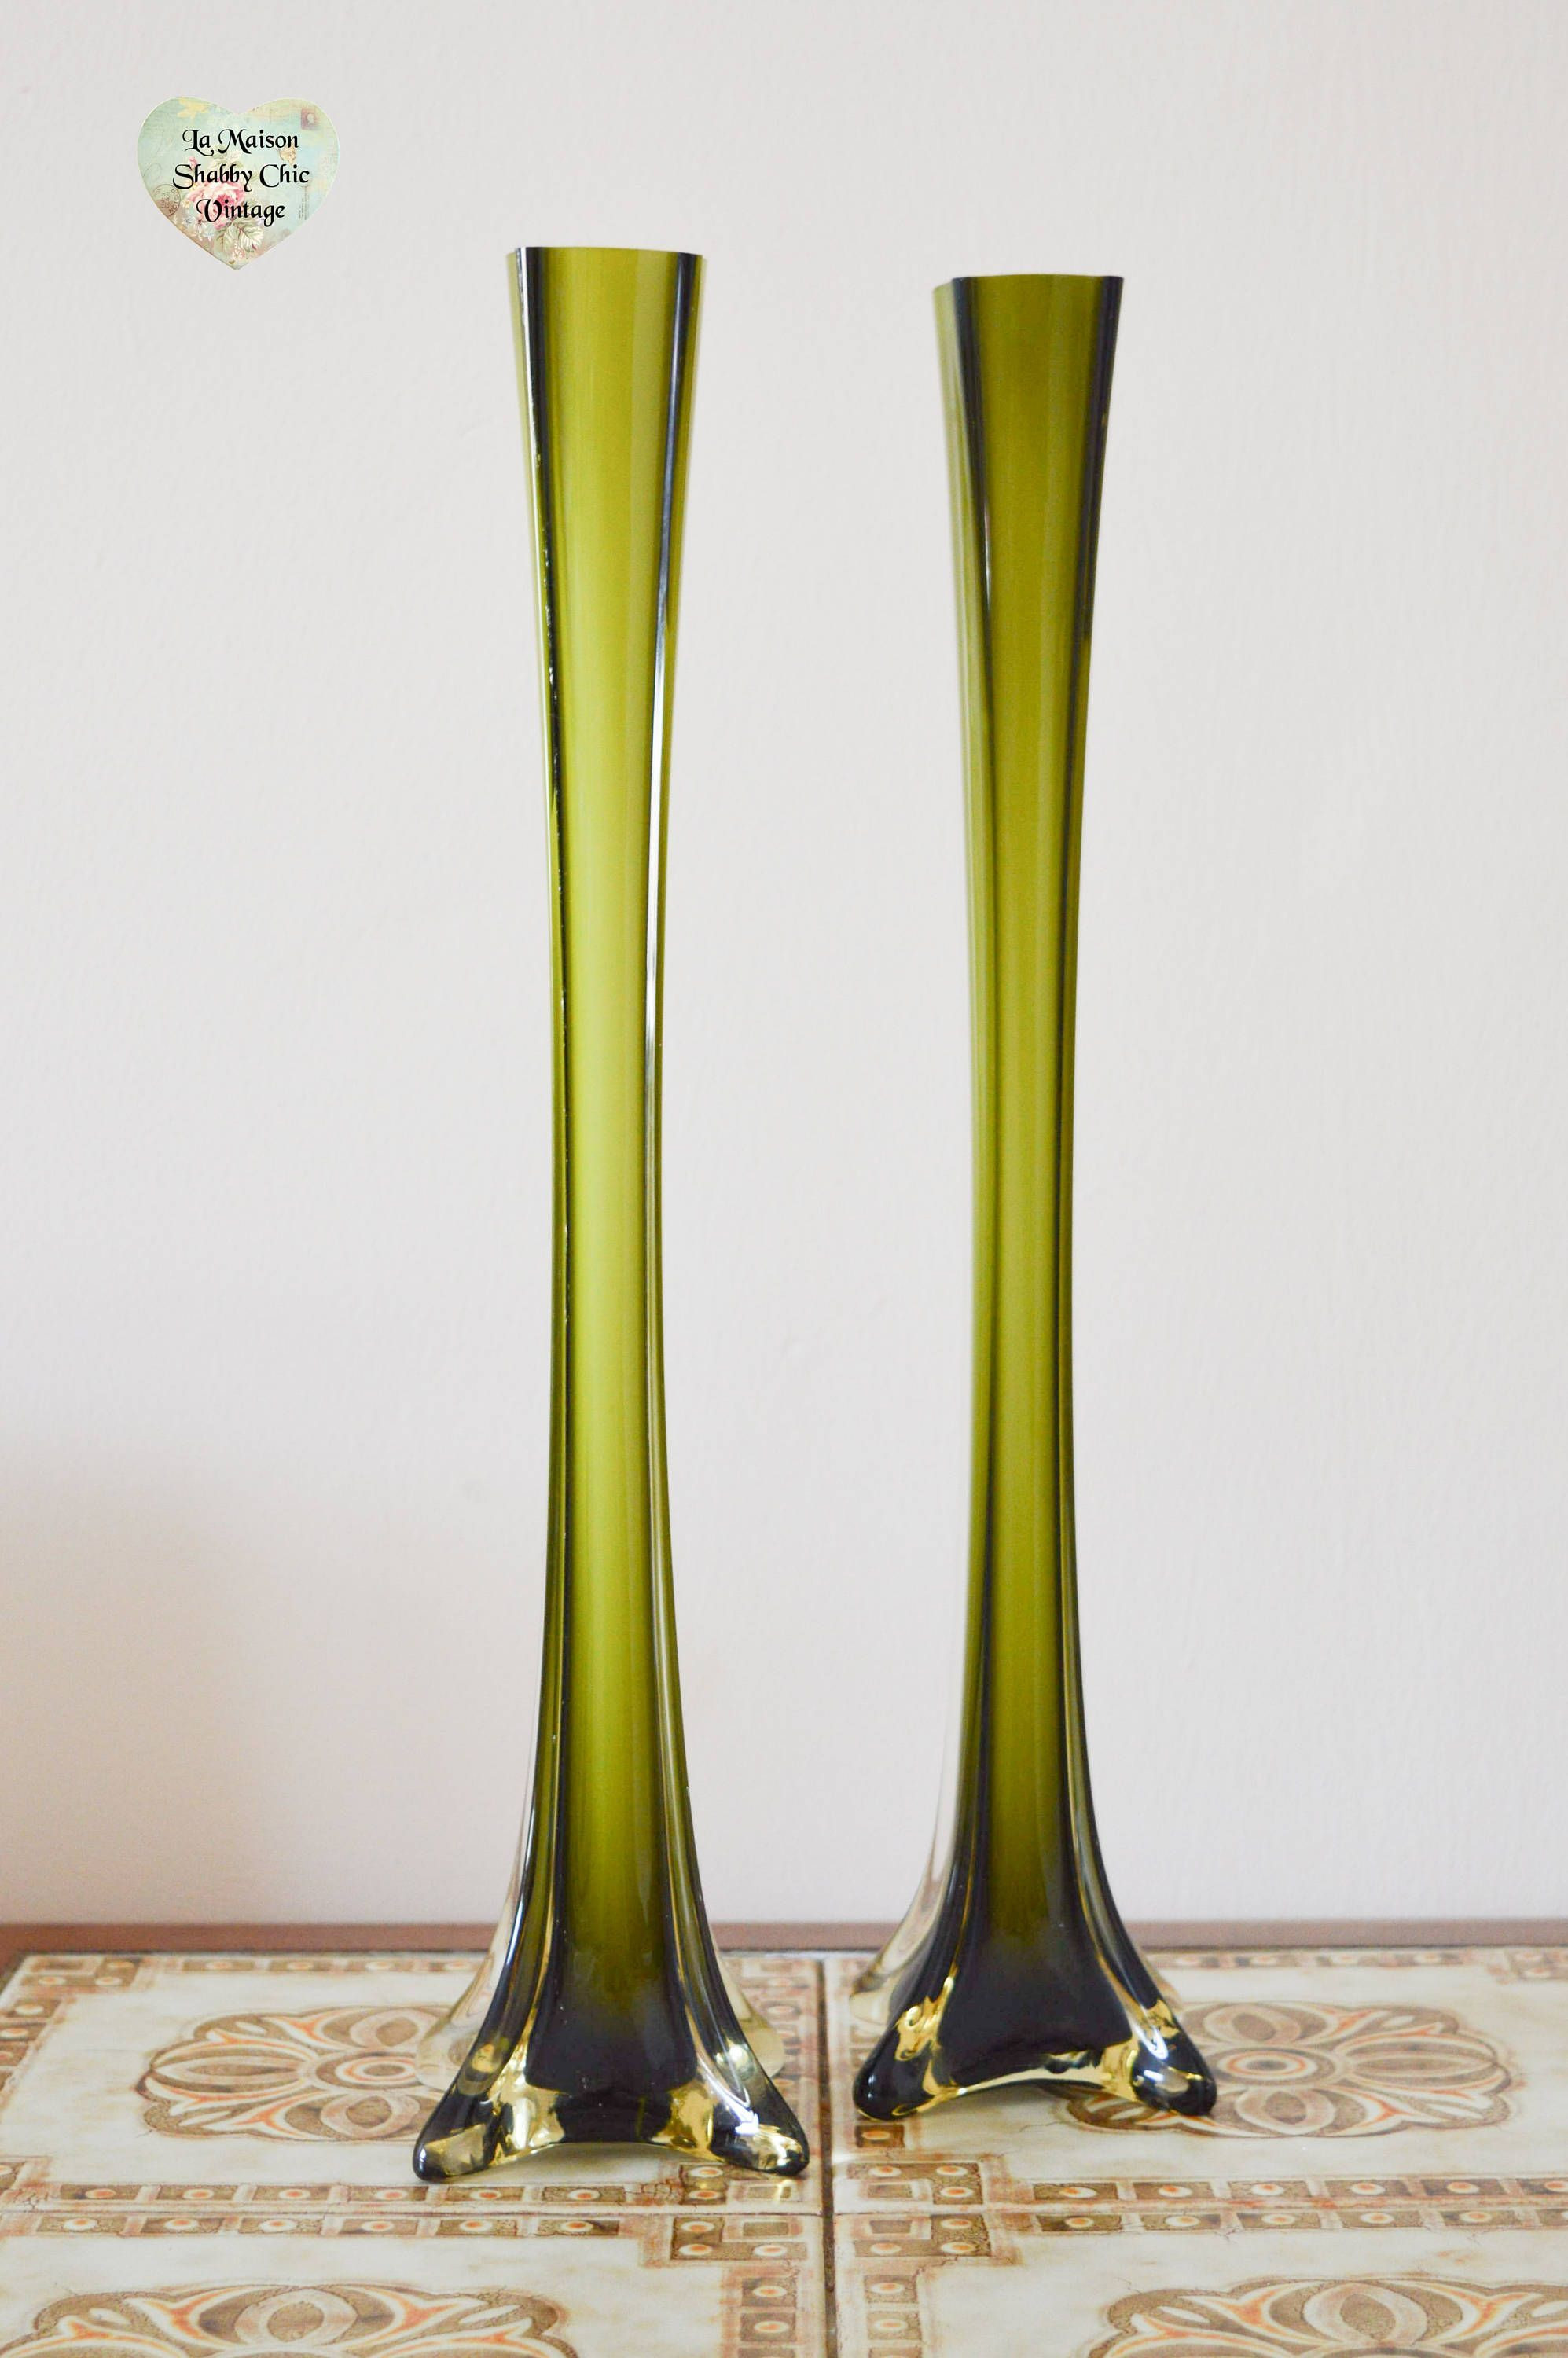 24 Great Vintage Tall orange Glass Vase 2021 free download vintage tall orange glass vase of 35 antique green glass vases the weekly world in retro skinny glass vases pair 2 shades of green retro flower vases